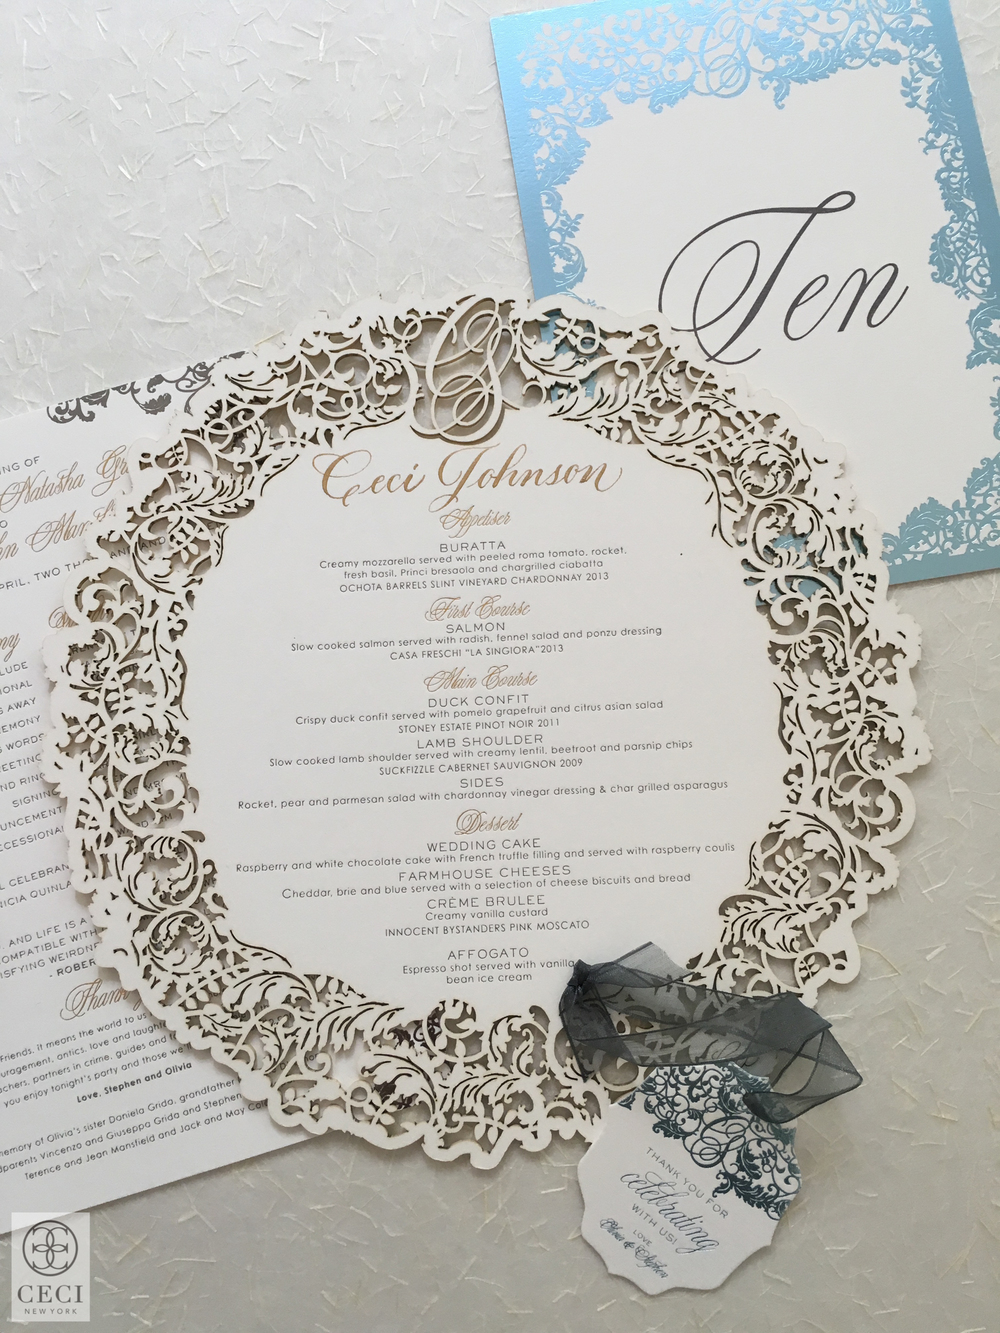 v2Ceci_New_York_Custom_Luxury_Wedding_BeautyShot_LaserCut_Stationery_Personalized_Couture_Foil_Stamping_Perth_Destination_Australia_Chic_-3.jpg